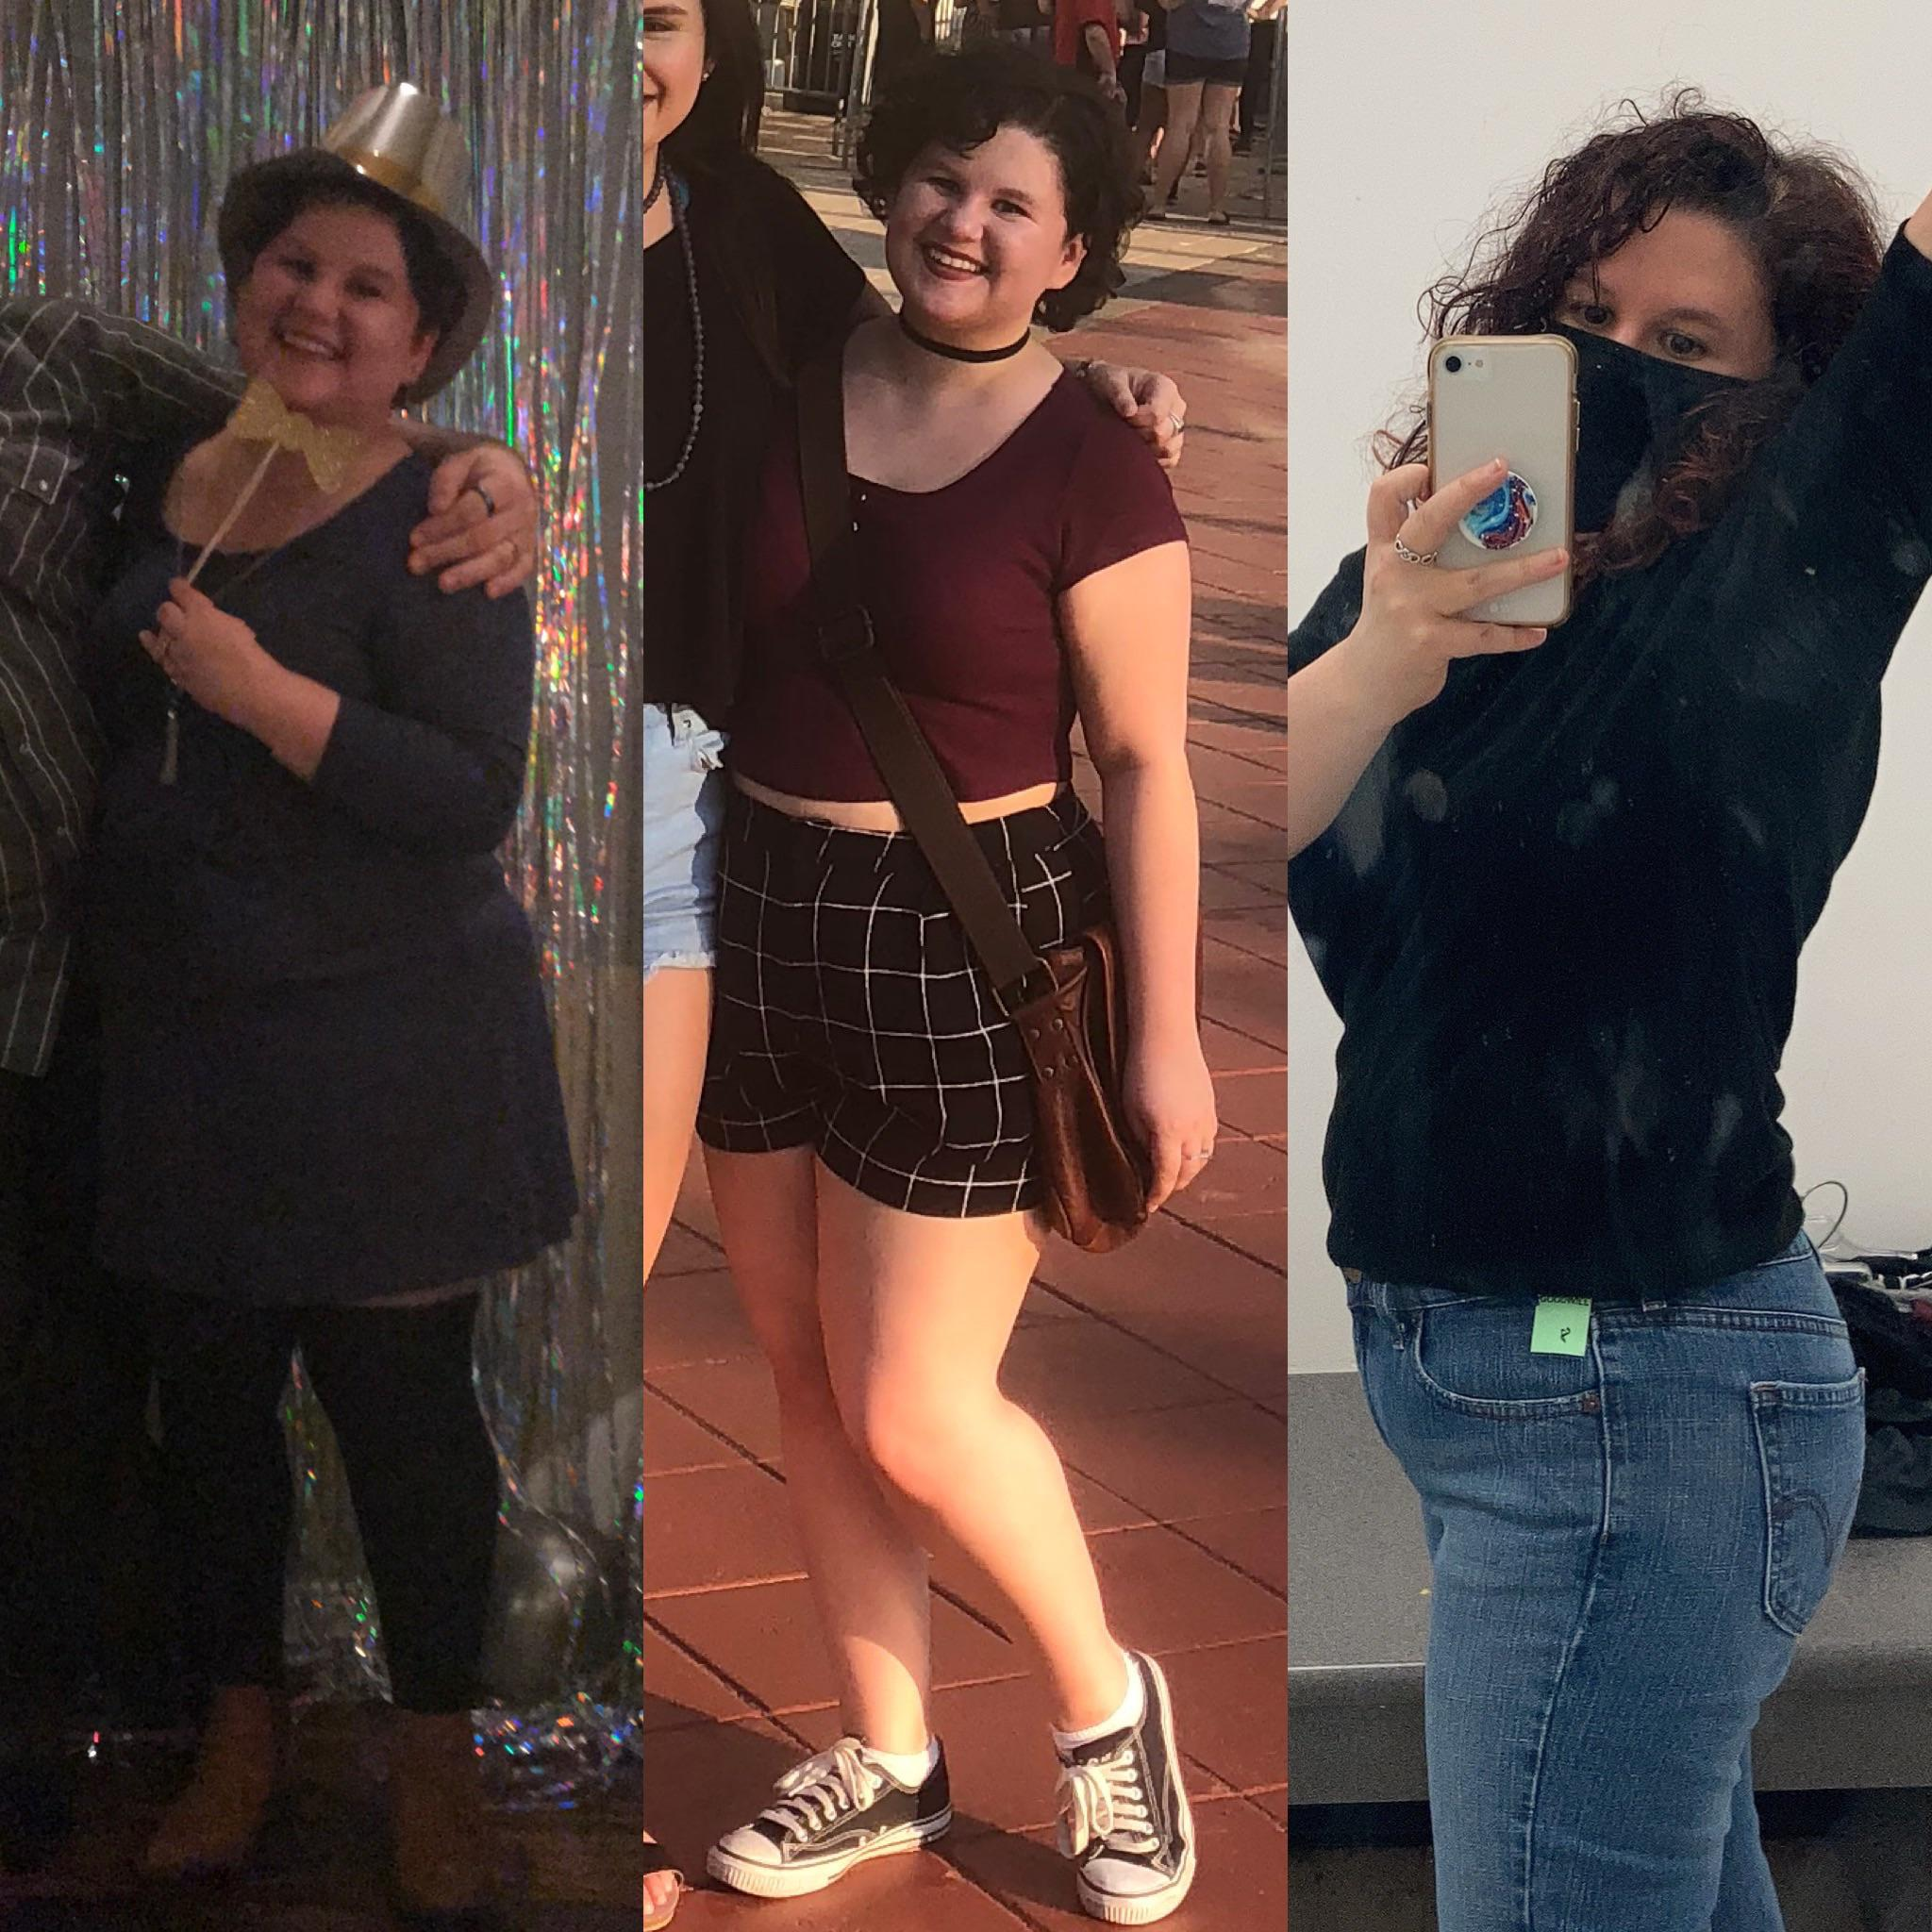 Before and After 39 lbs Weight Loss 4 foot 10 Female 172 lbs to 133 lbs